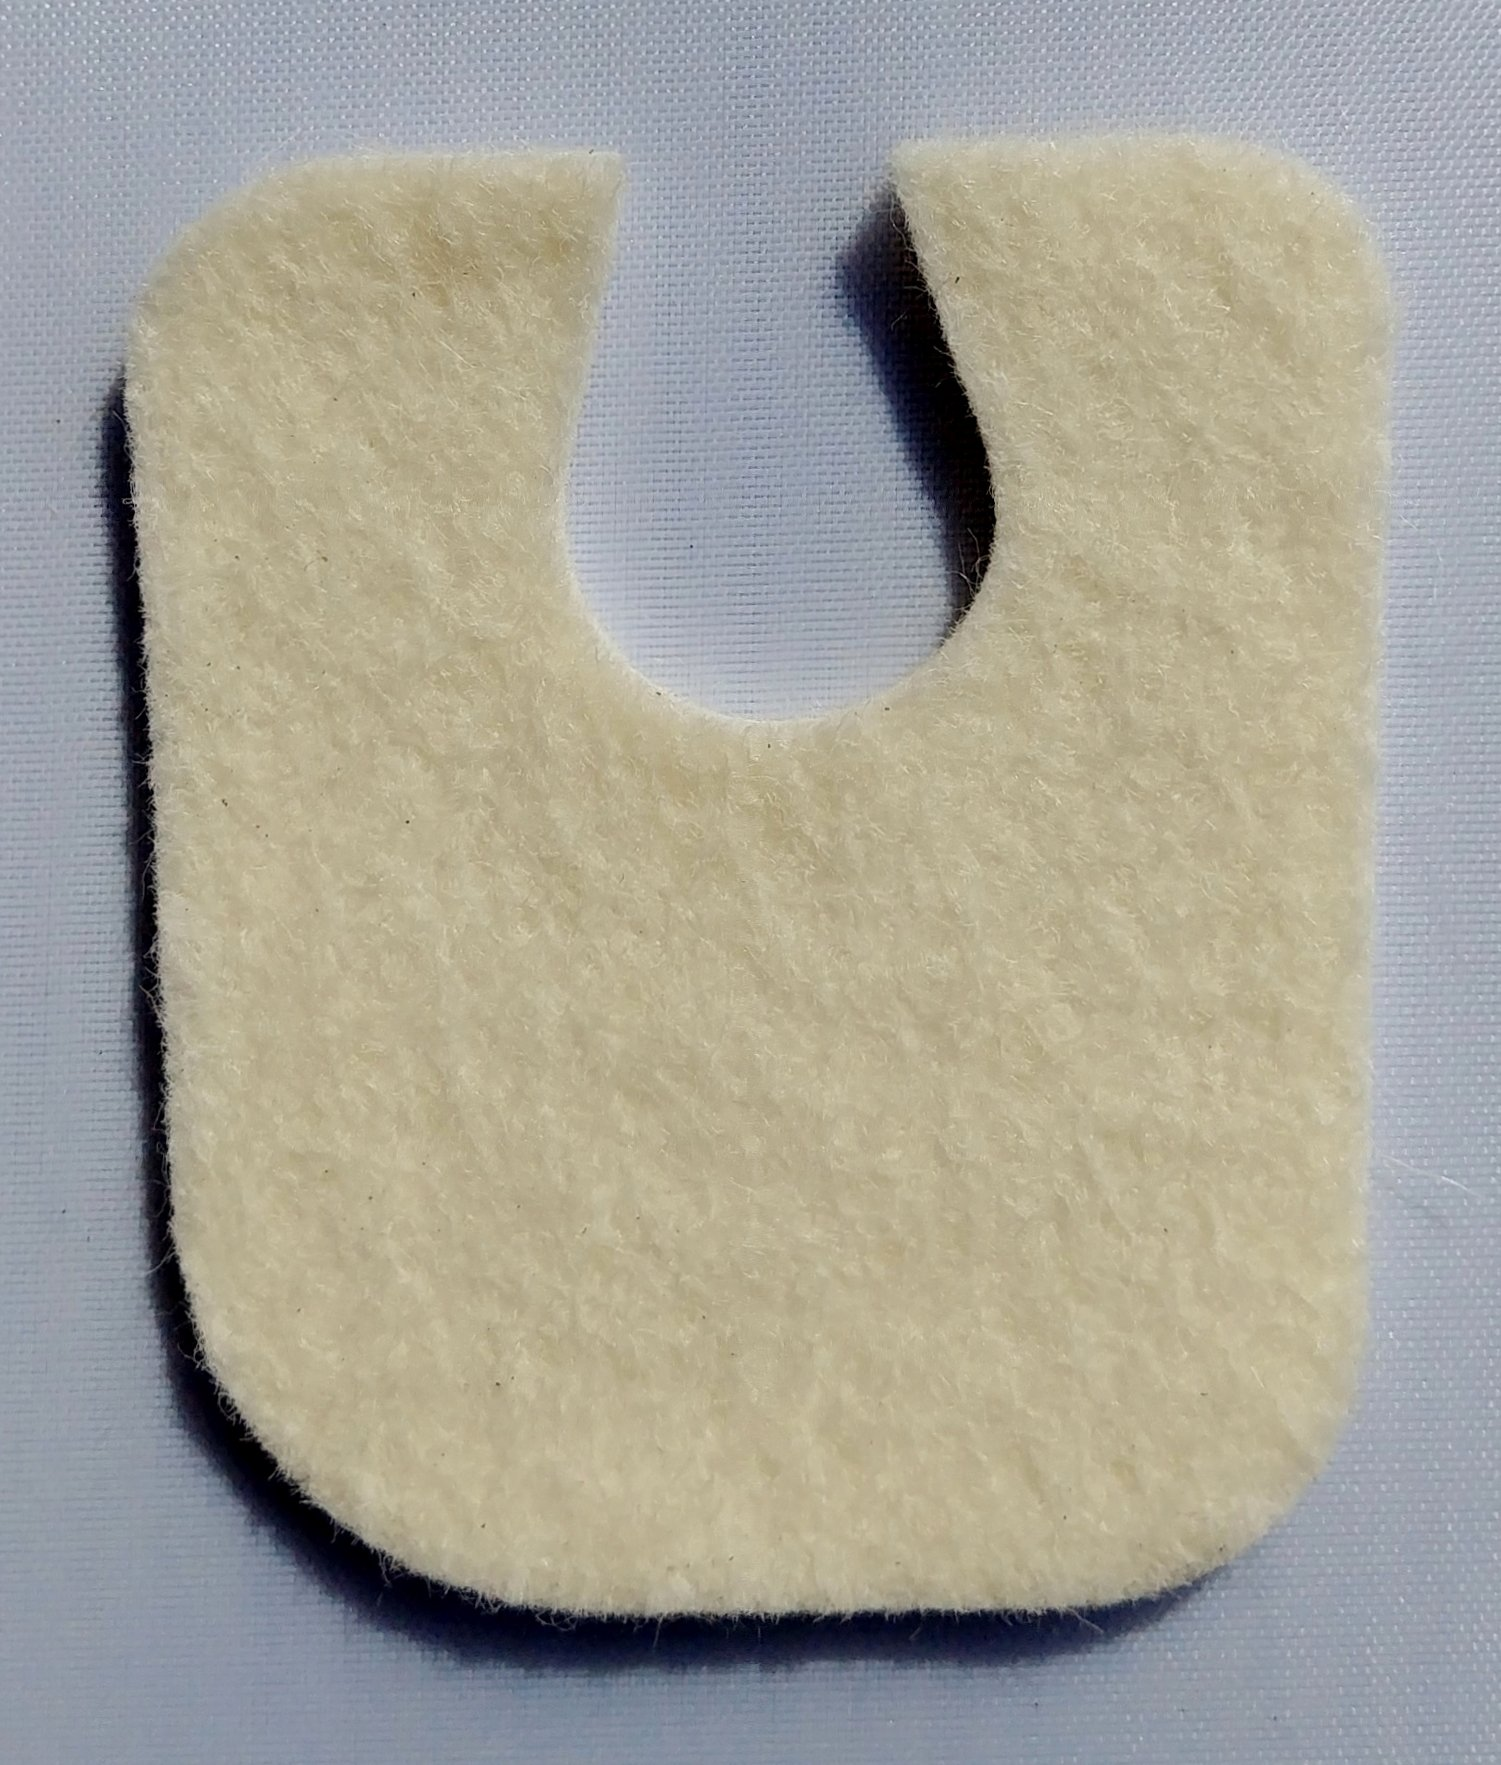 Extra Thick U Shaped Callus Cushion, 100 Felt Pads